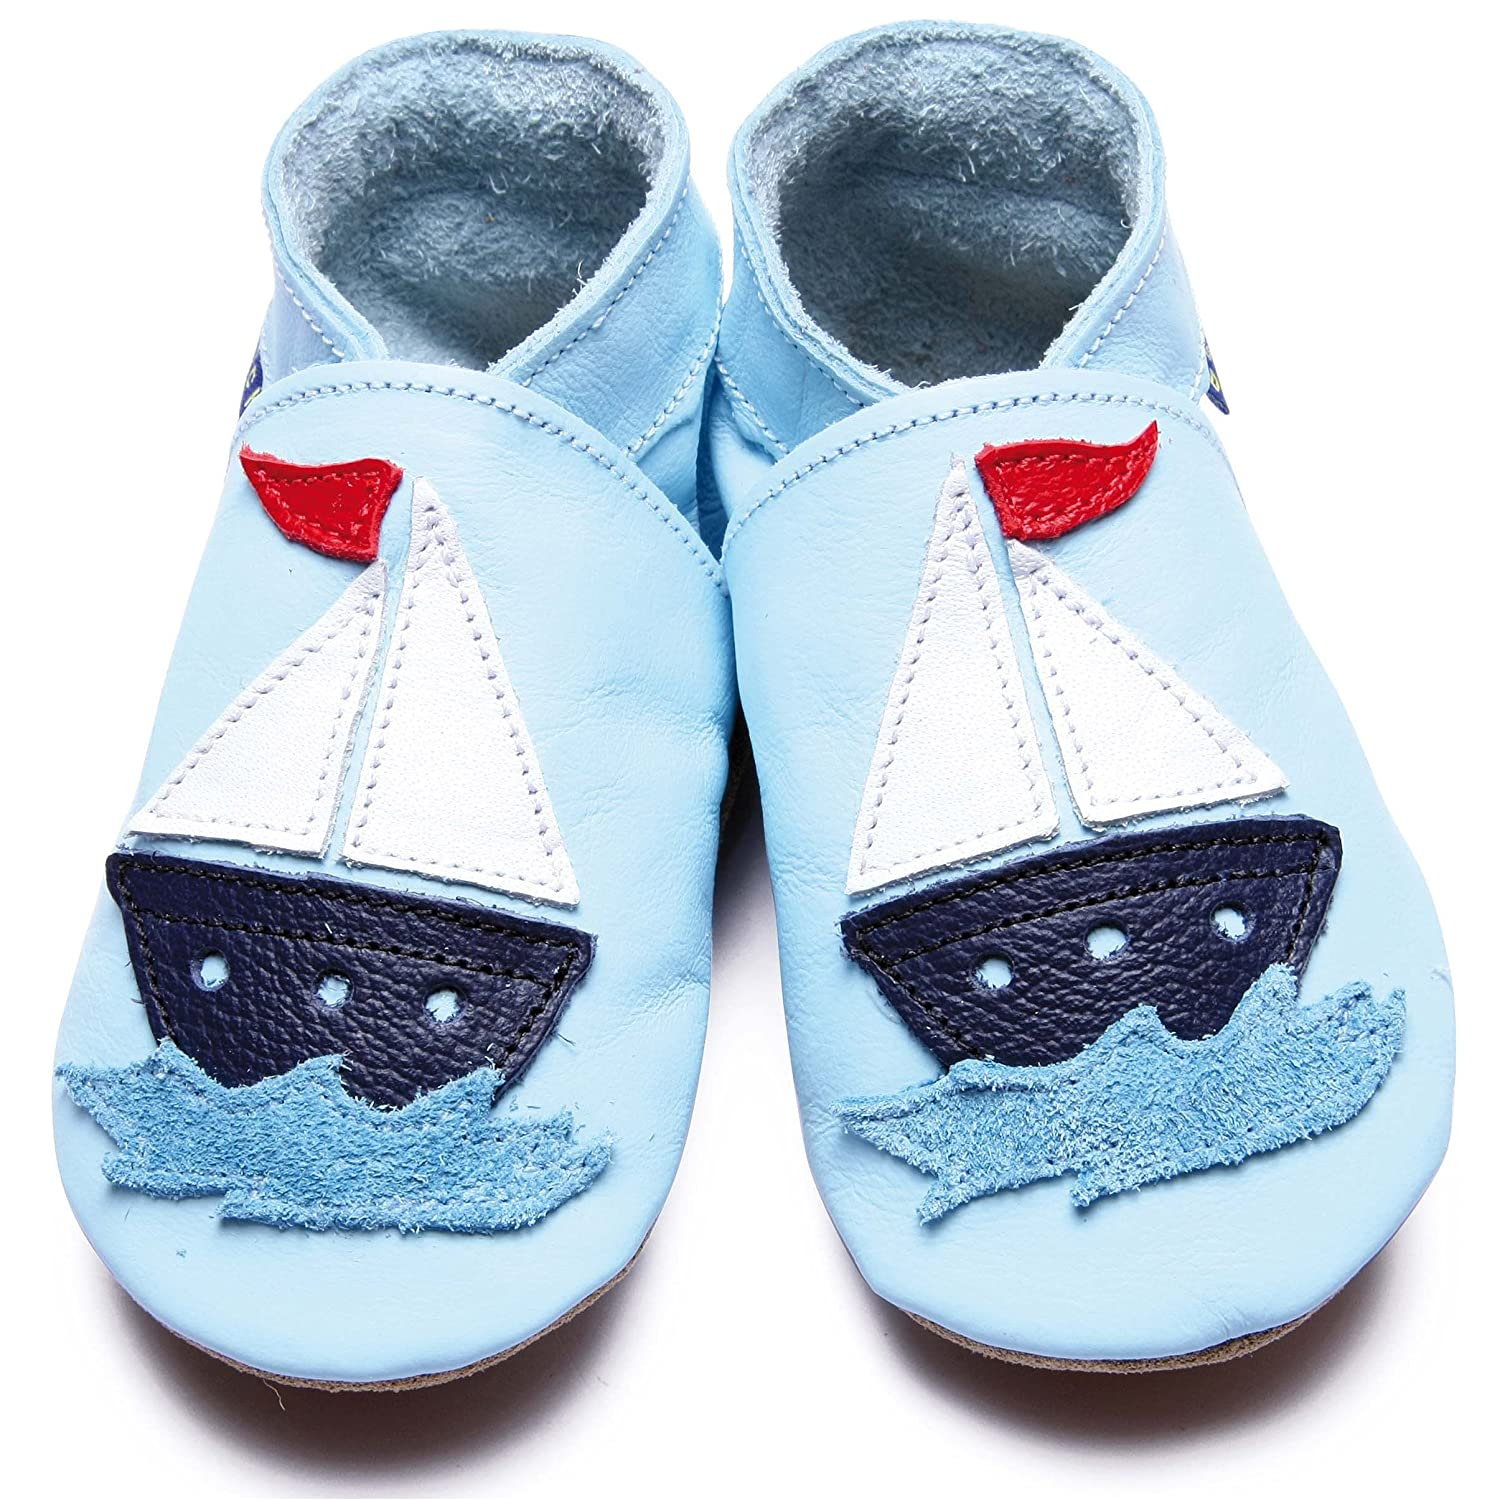 Inch Blue Boys Baby Leather Soft Sole Pram Shoes - Sail Boat Baby Blue - Small - White Box